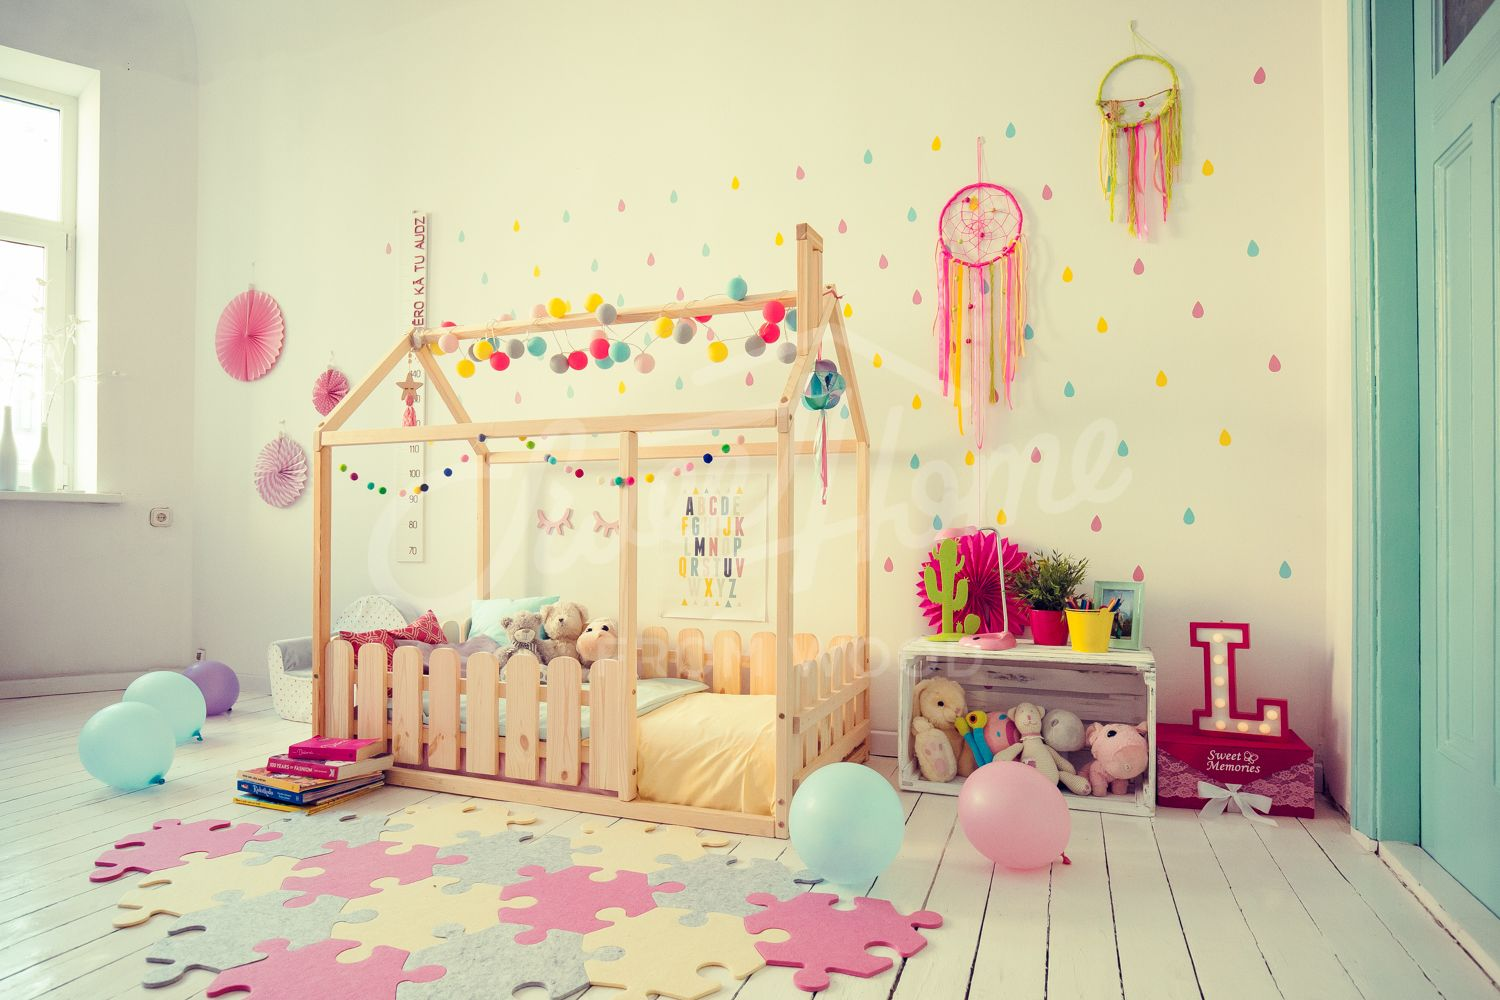 Toddler bed, house bed, tent bed, wooden house, wood house, wood ...